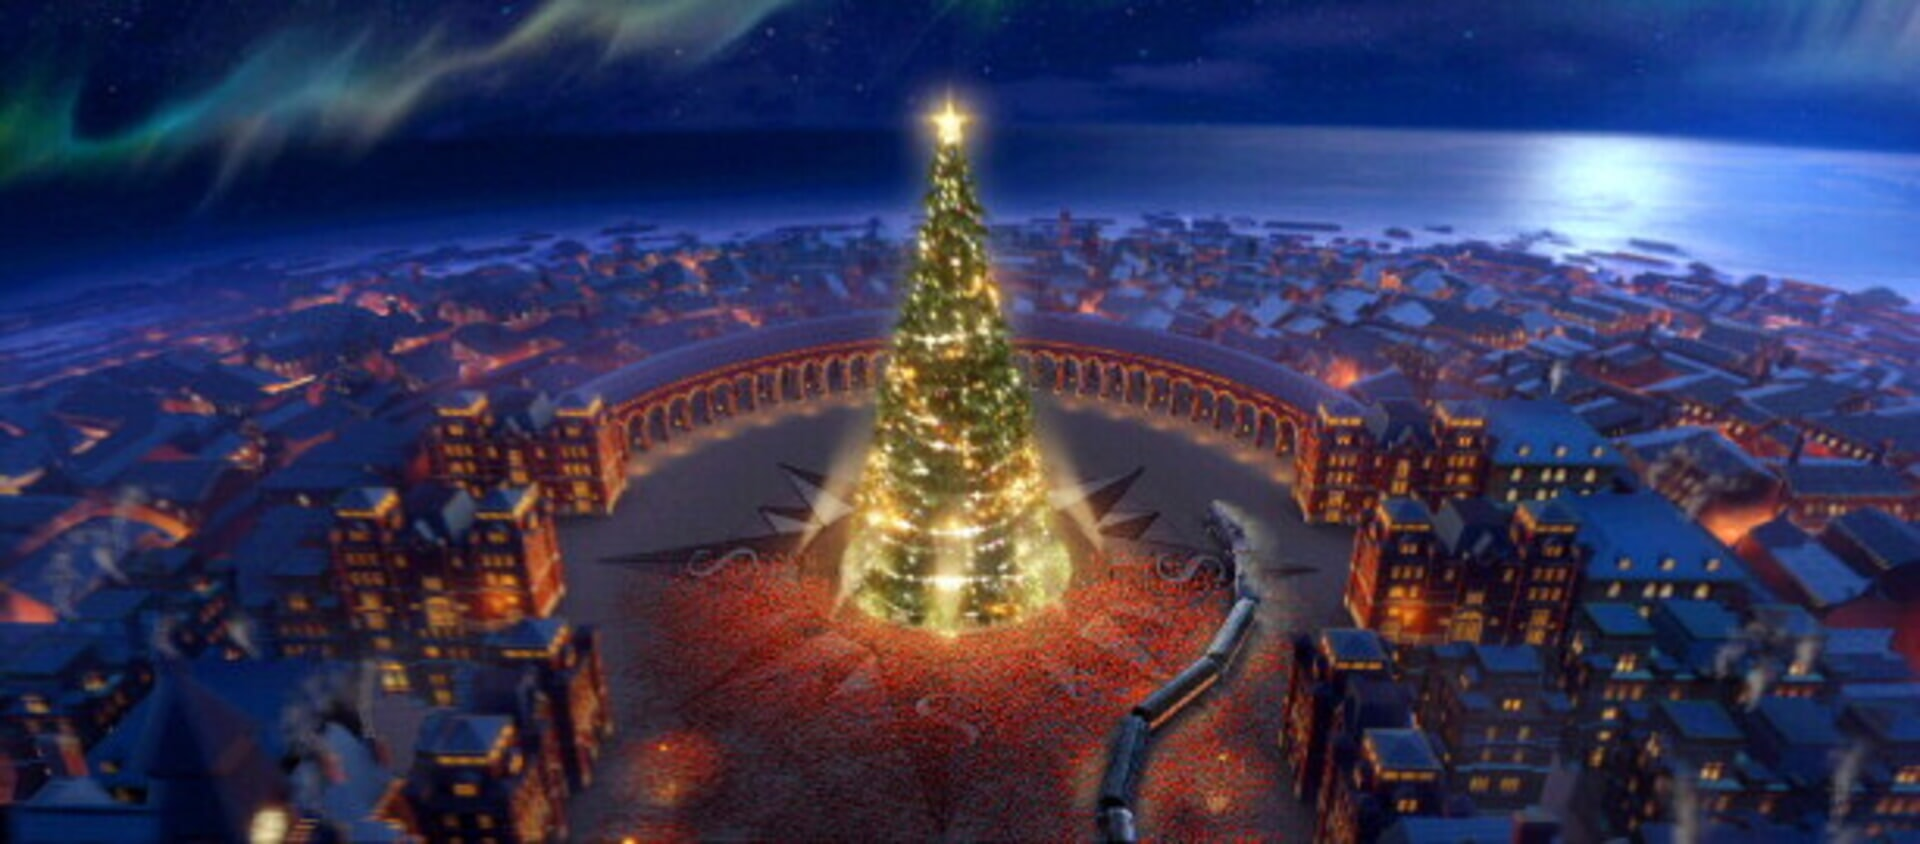 The Polar Express - Image 7